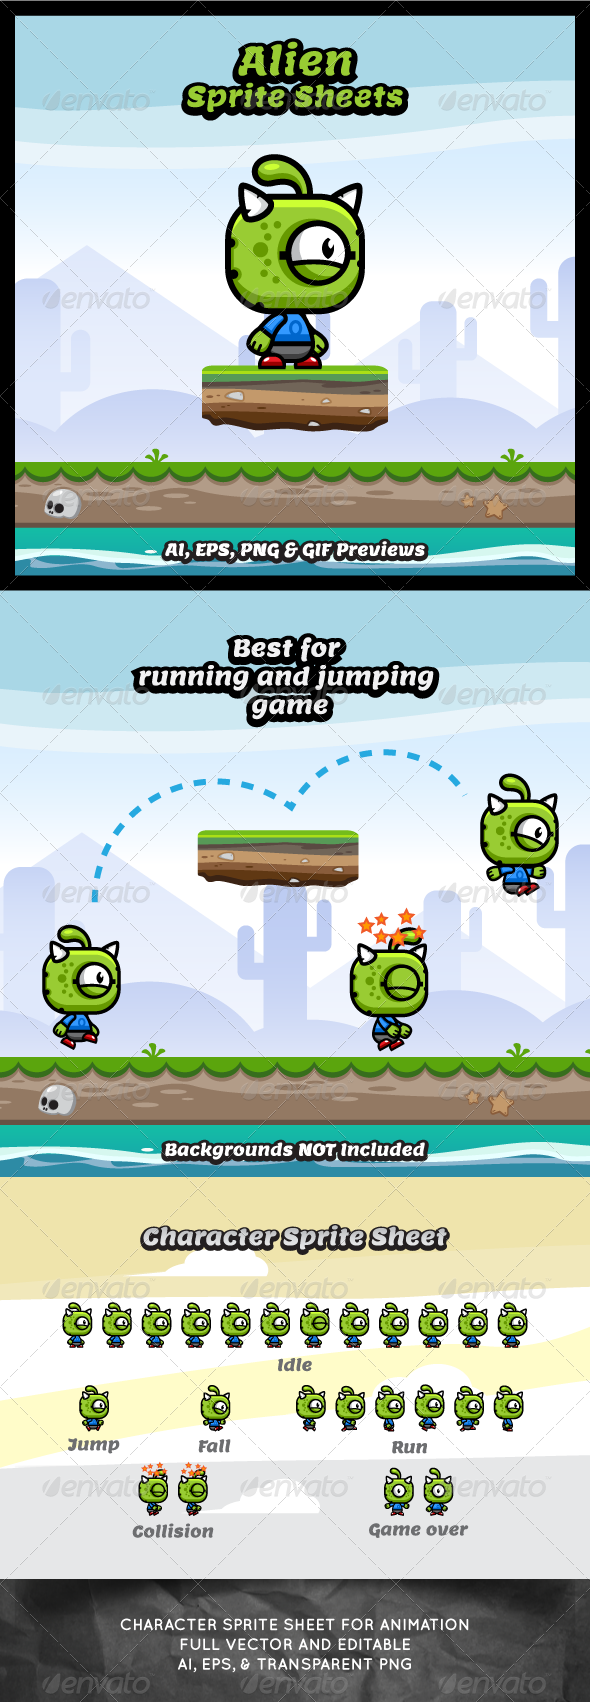 Running & Jumping Alien Sprite Sheets